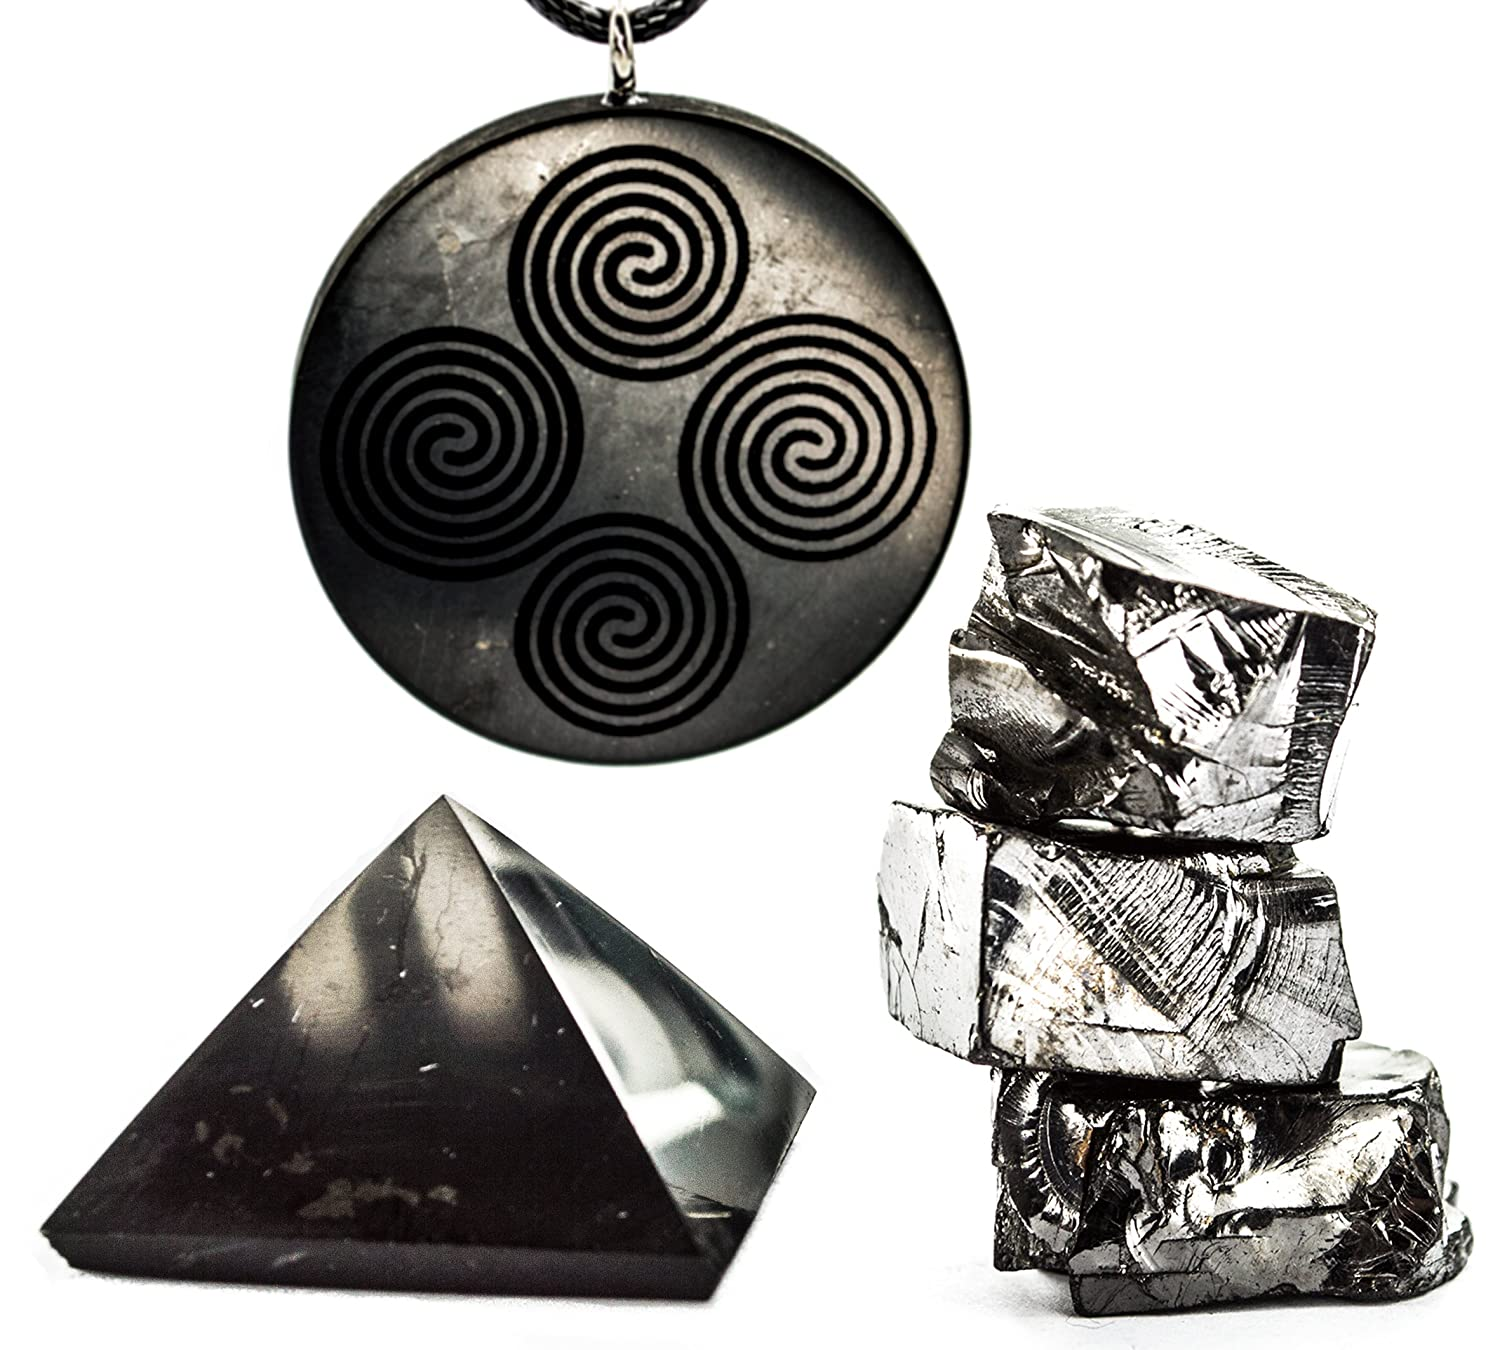 Wallystone Gems Shungite Sphere Polished 30 MM and Shungite Pendant with Engraving The Seed of Life Energy Pendant Anti Radiation Shield EMF Relaxing Gift Set